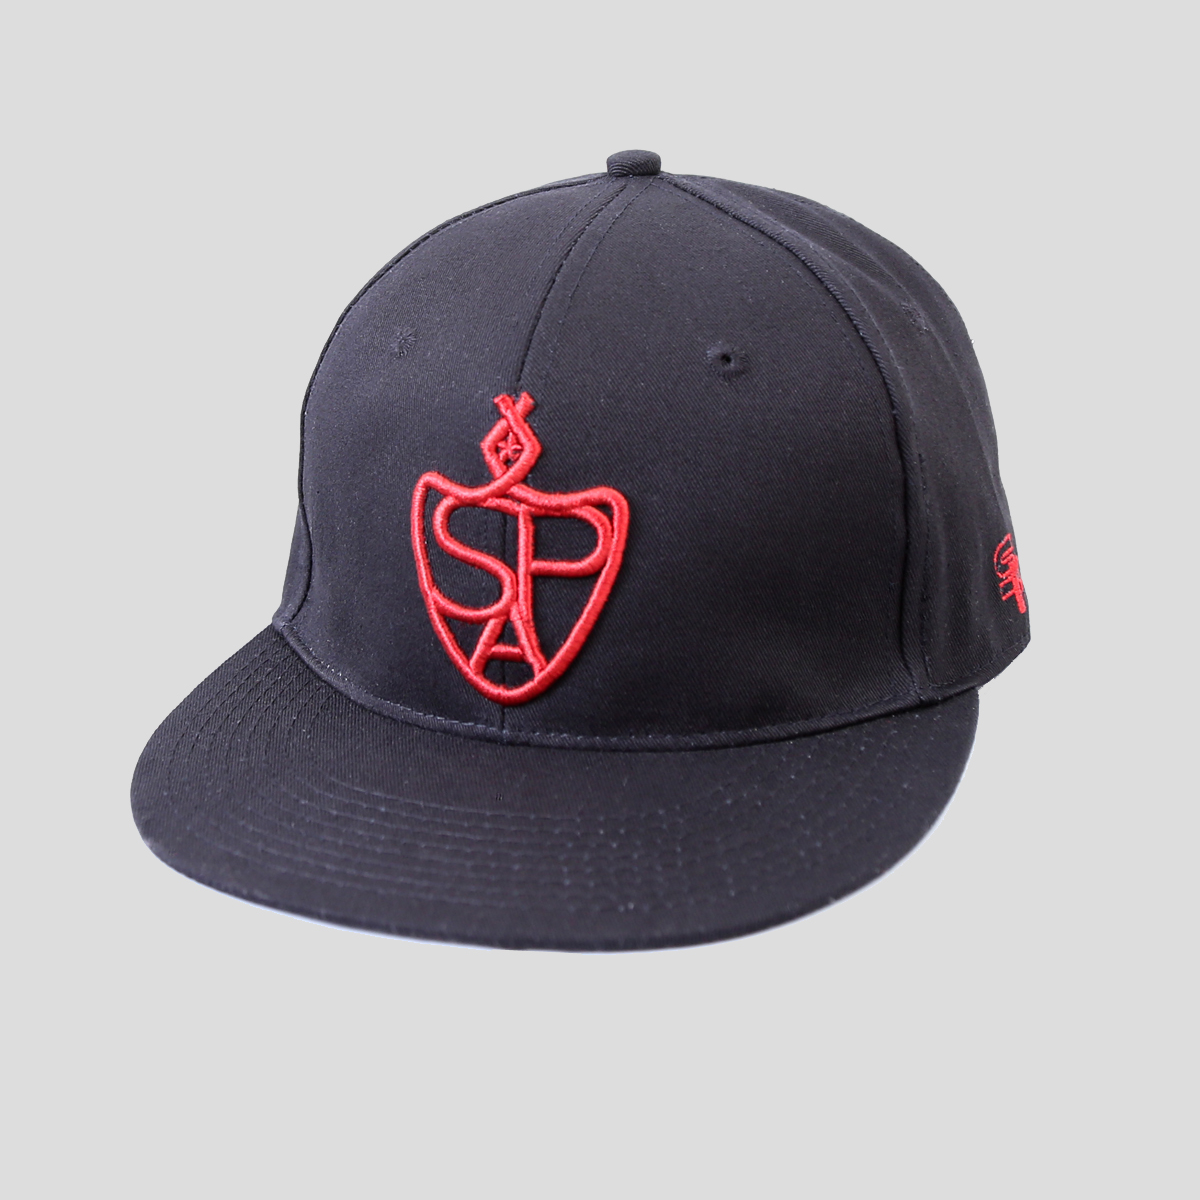 SP Aesthetics 'Emblem Lifestyle' Snapback Hat - Black/Red